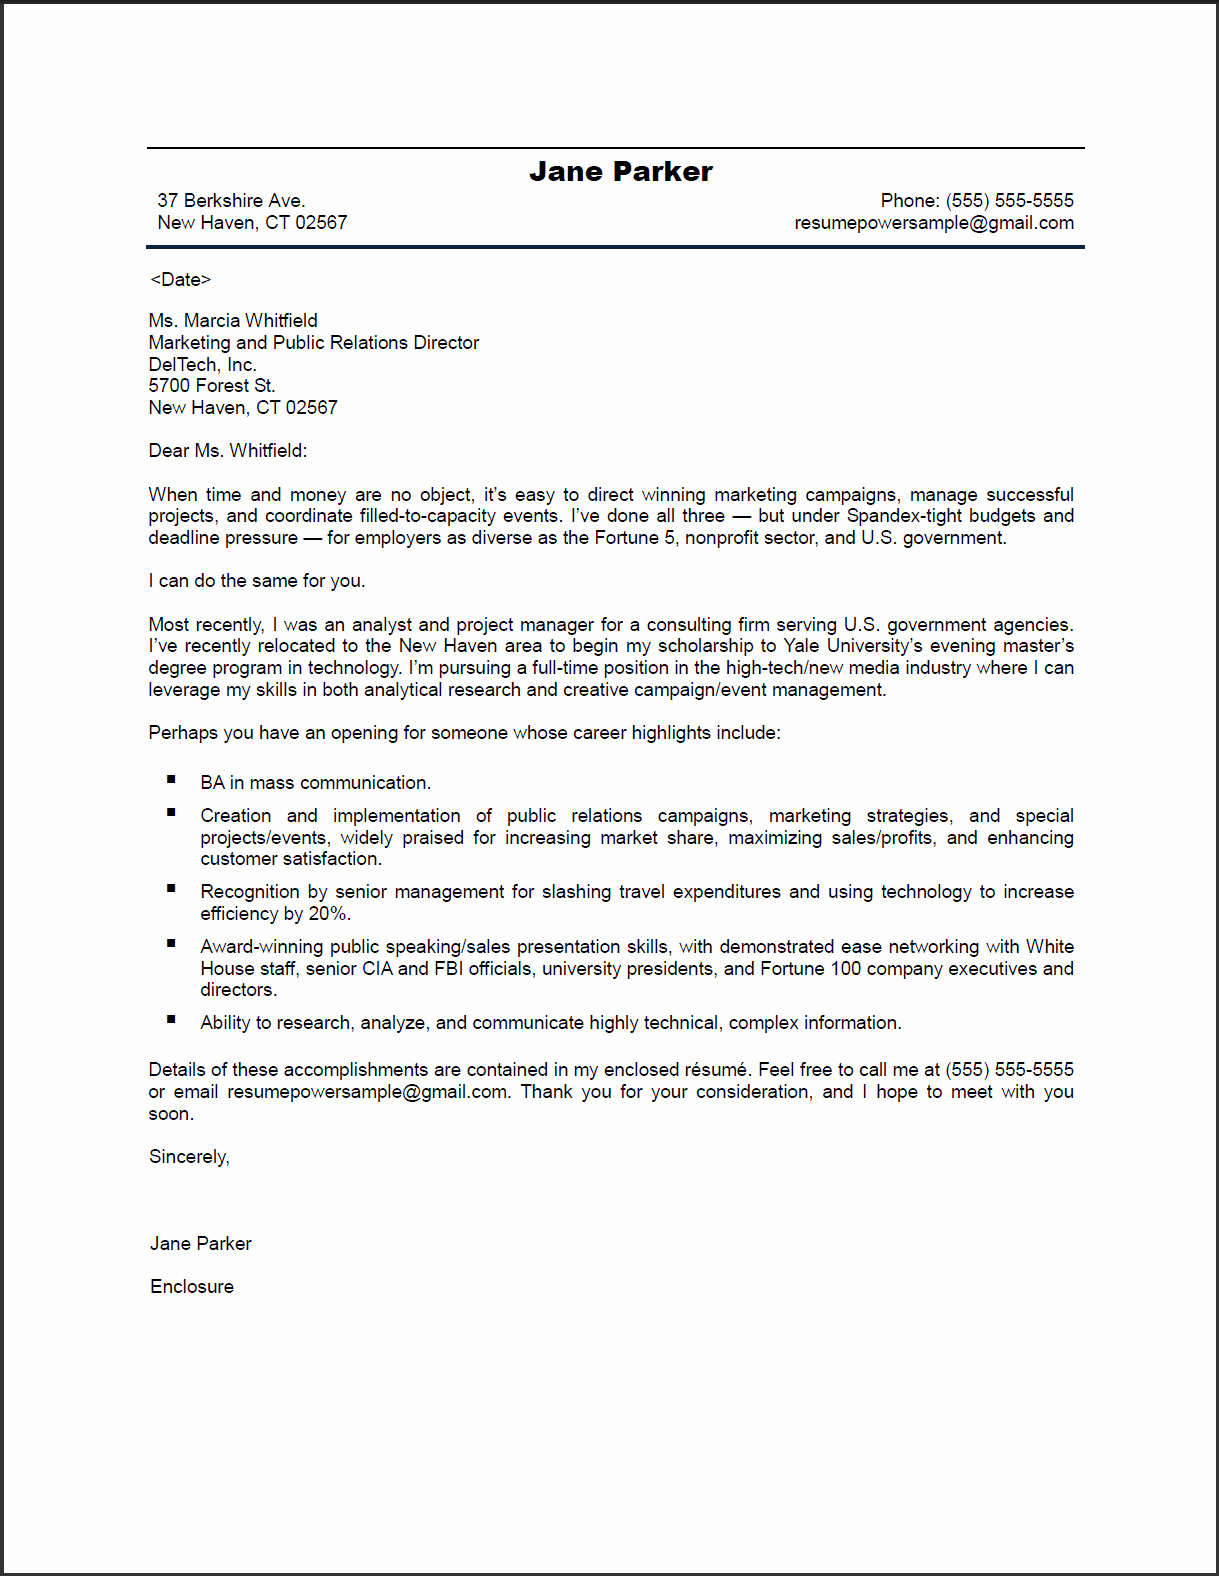 Grant Thank You Letter Template - Resume and Cover Letter Template Best Broward Schools Homework